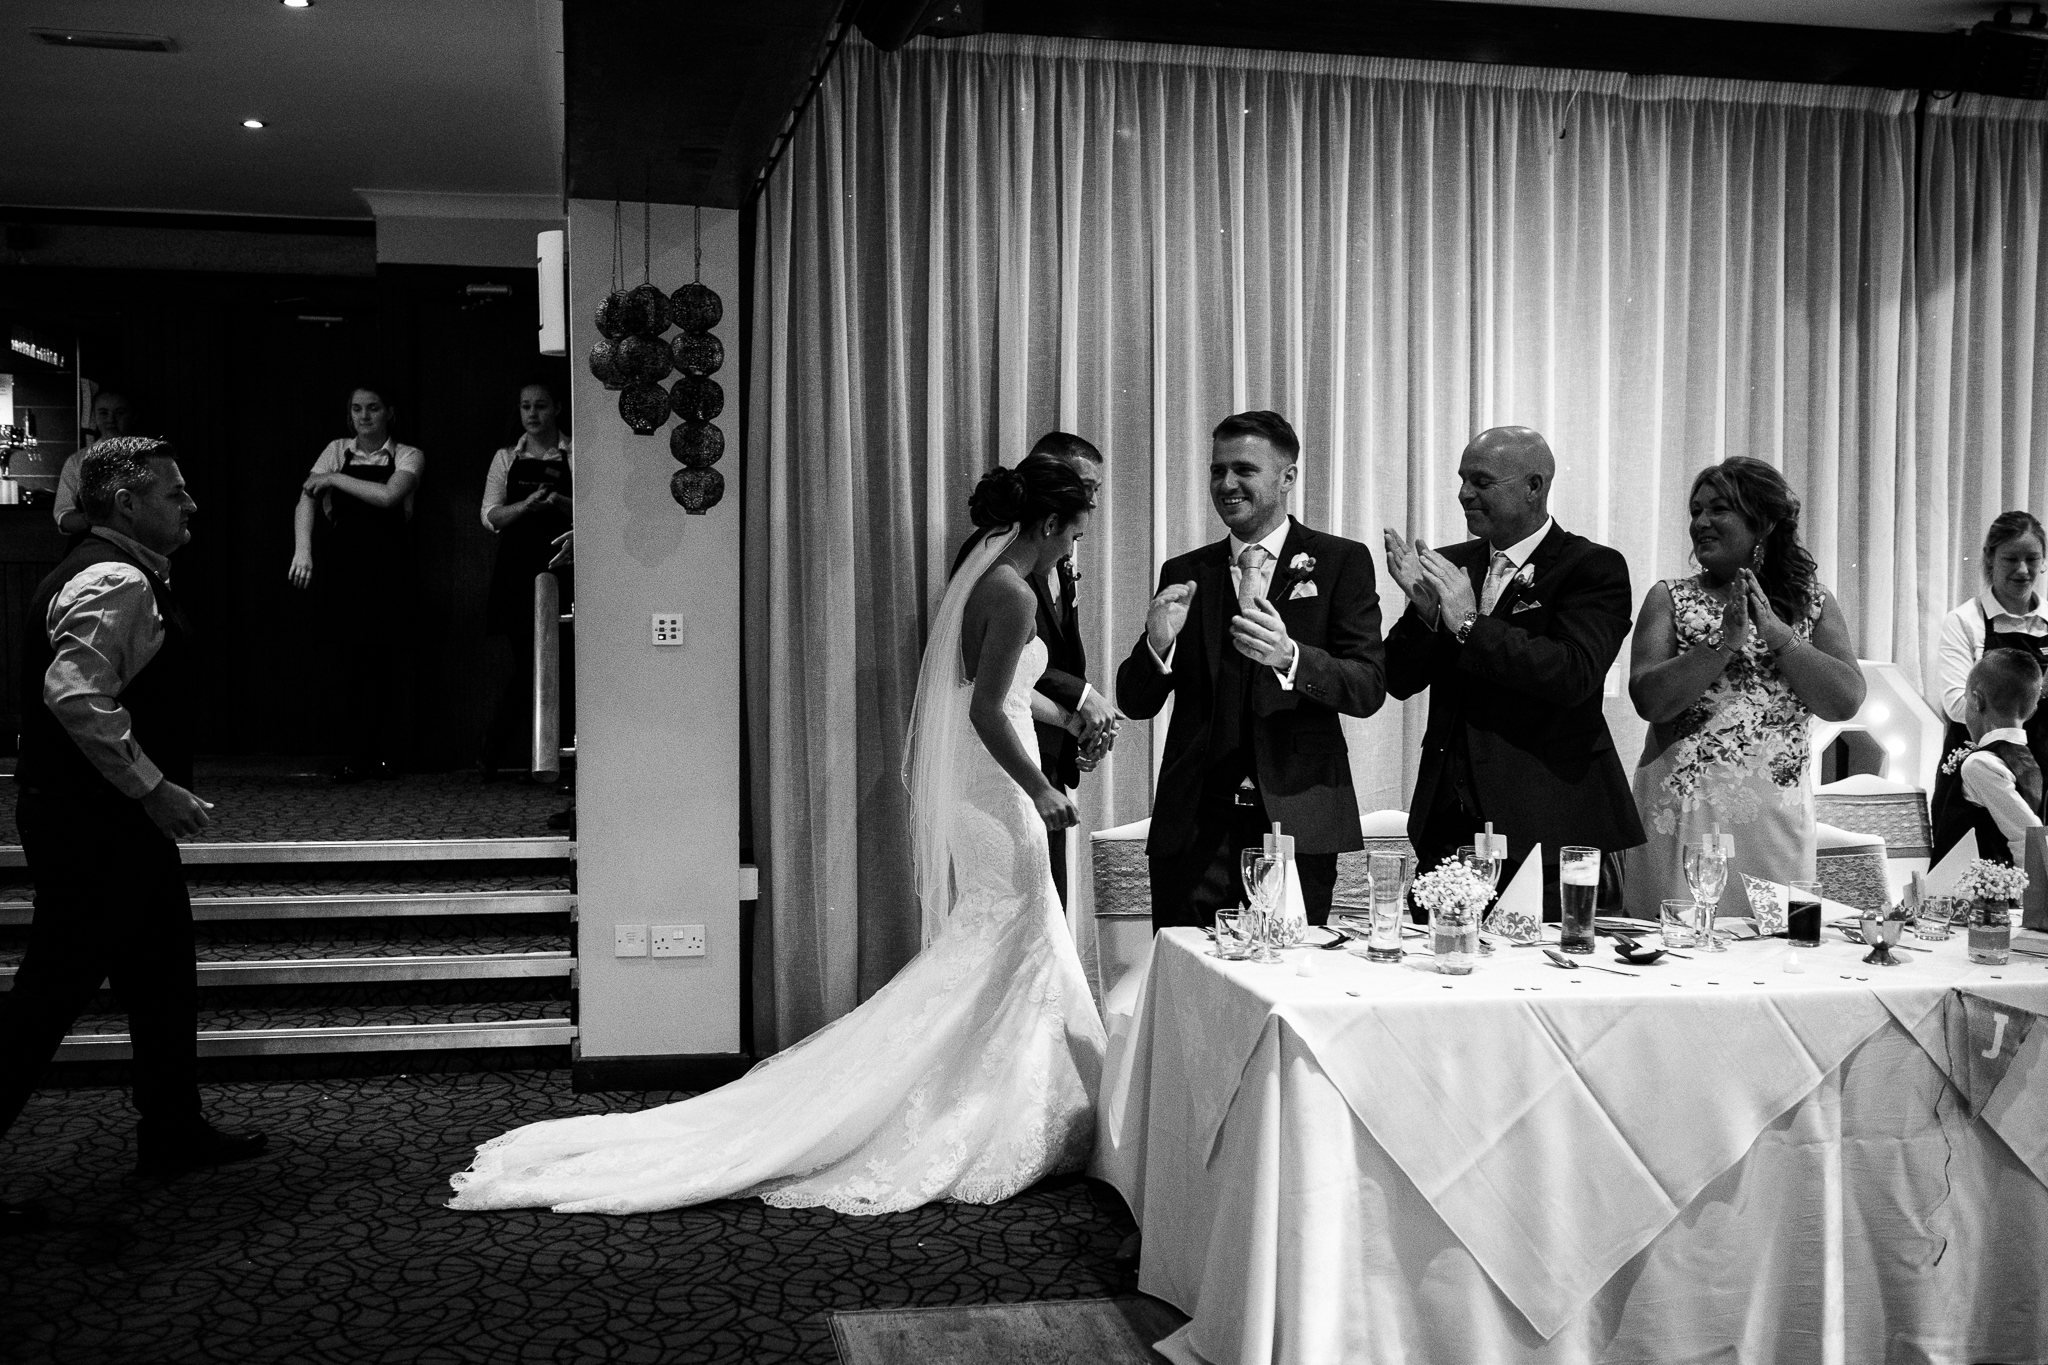 Staffordshire Moorlands Documentary Wedding Photography at The Three Horseshoes, Blackshaw Moor - Jenny Harper-25.jpg